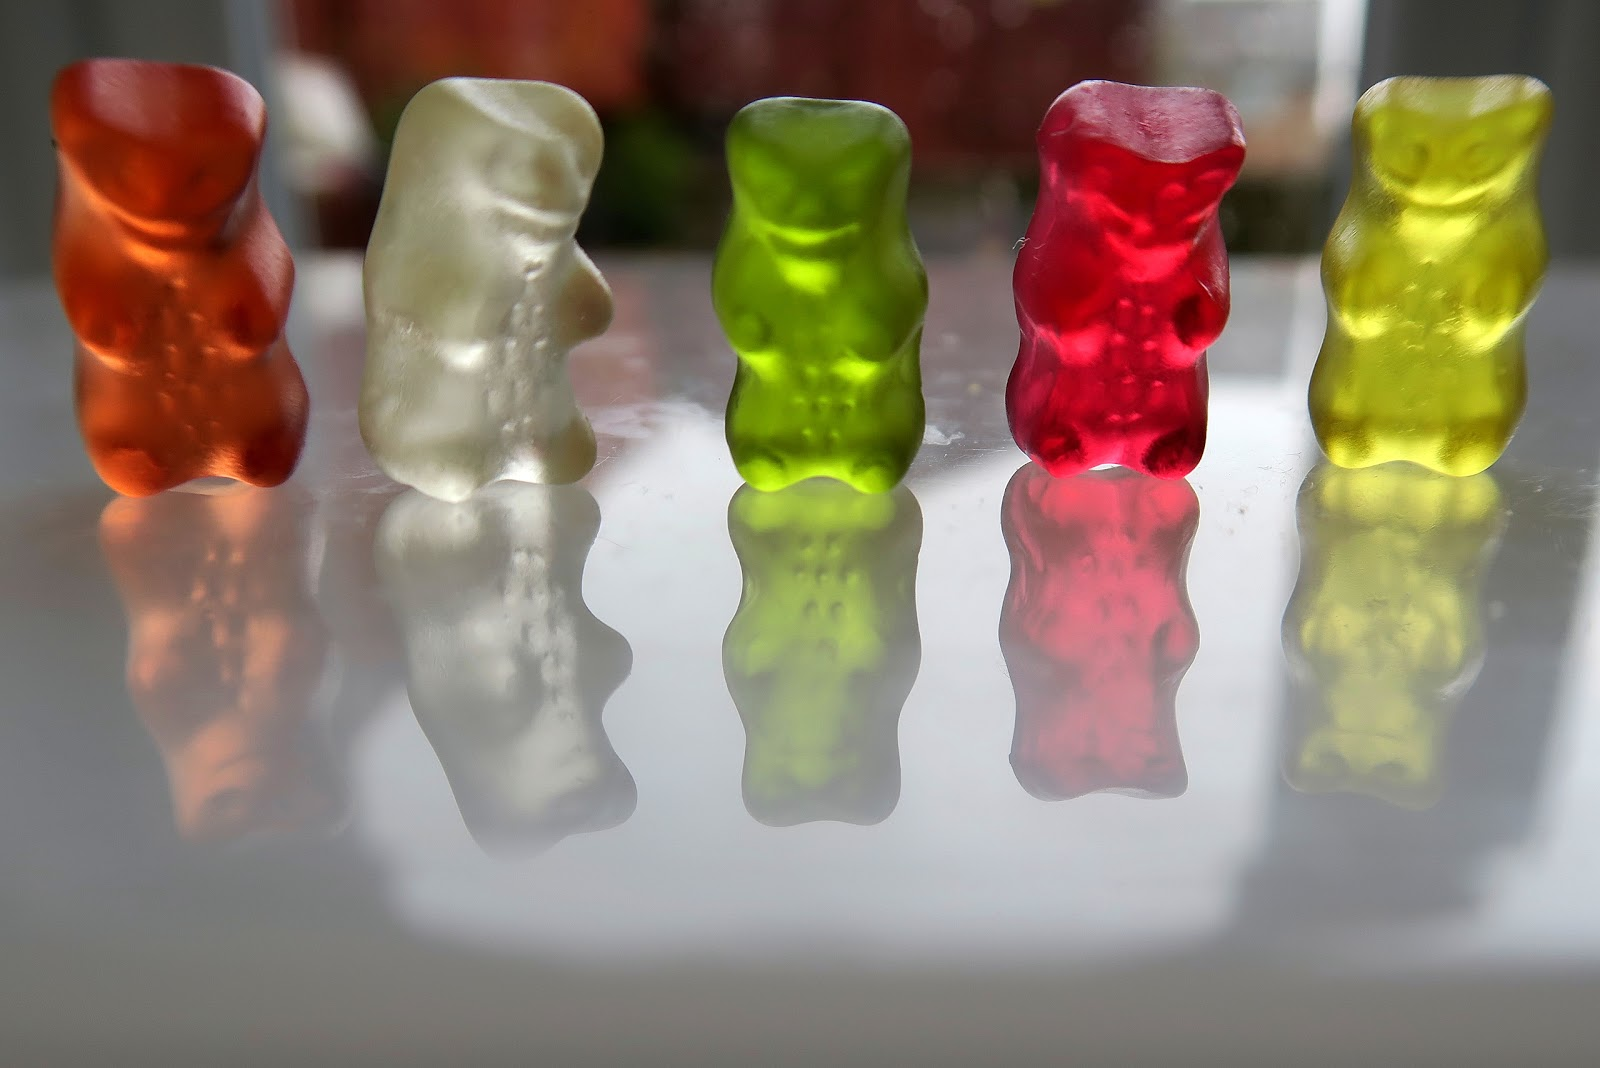 image relating to Gummy Bear Printable referred to as Gummy undertake enhancement + absolutely free printable mamaisdreaming.blogspot